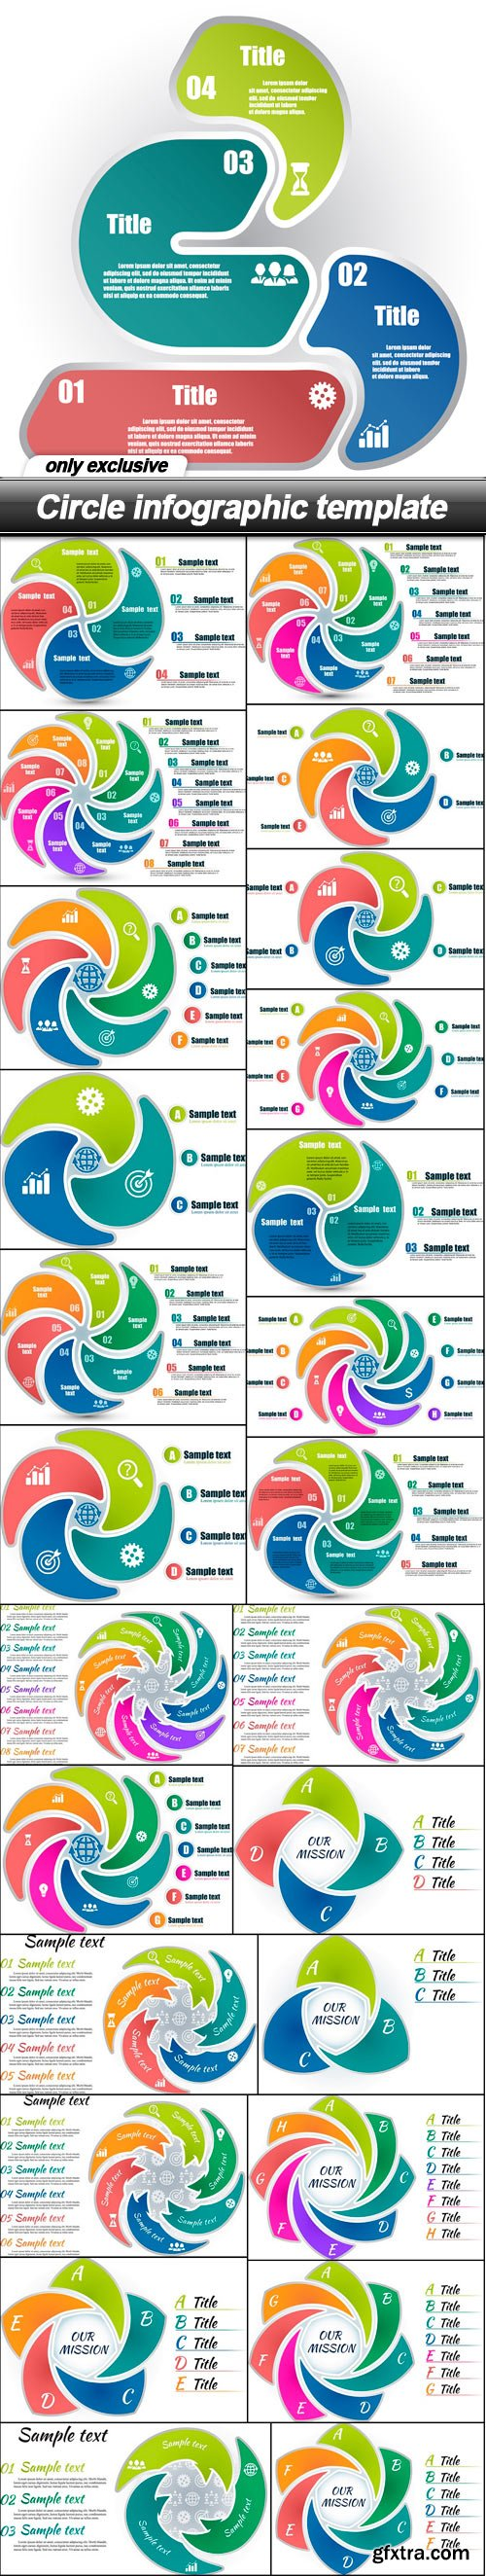 Circle infographic template - 26 EPS